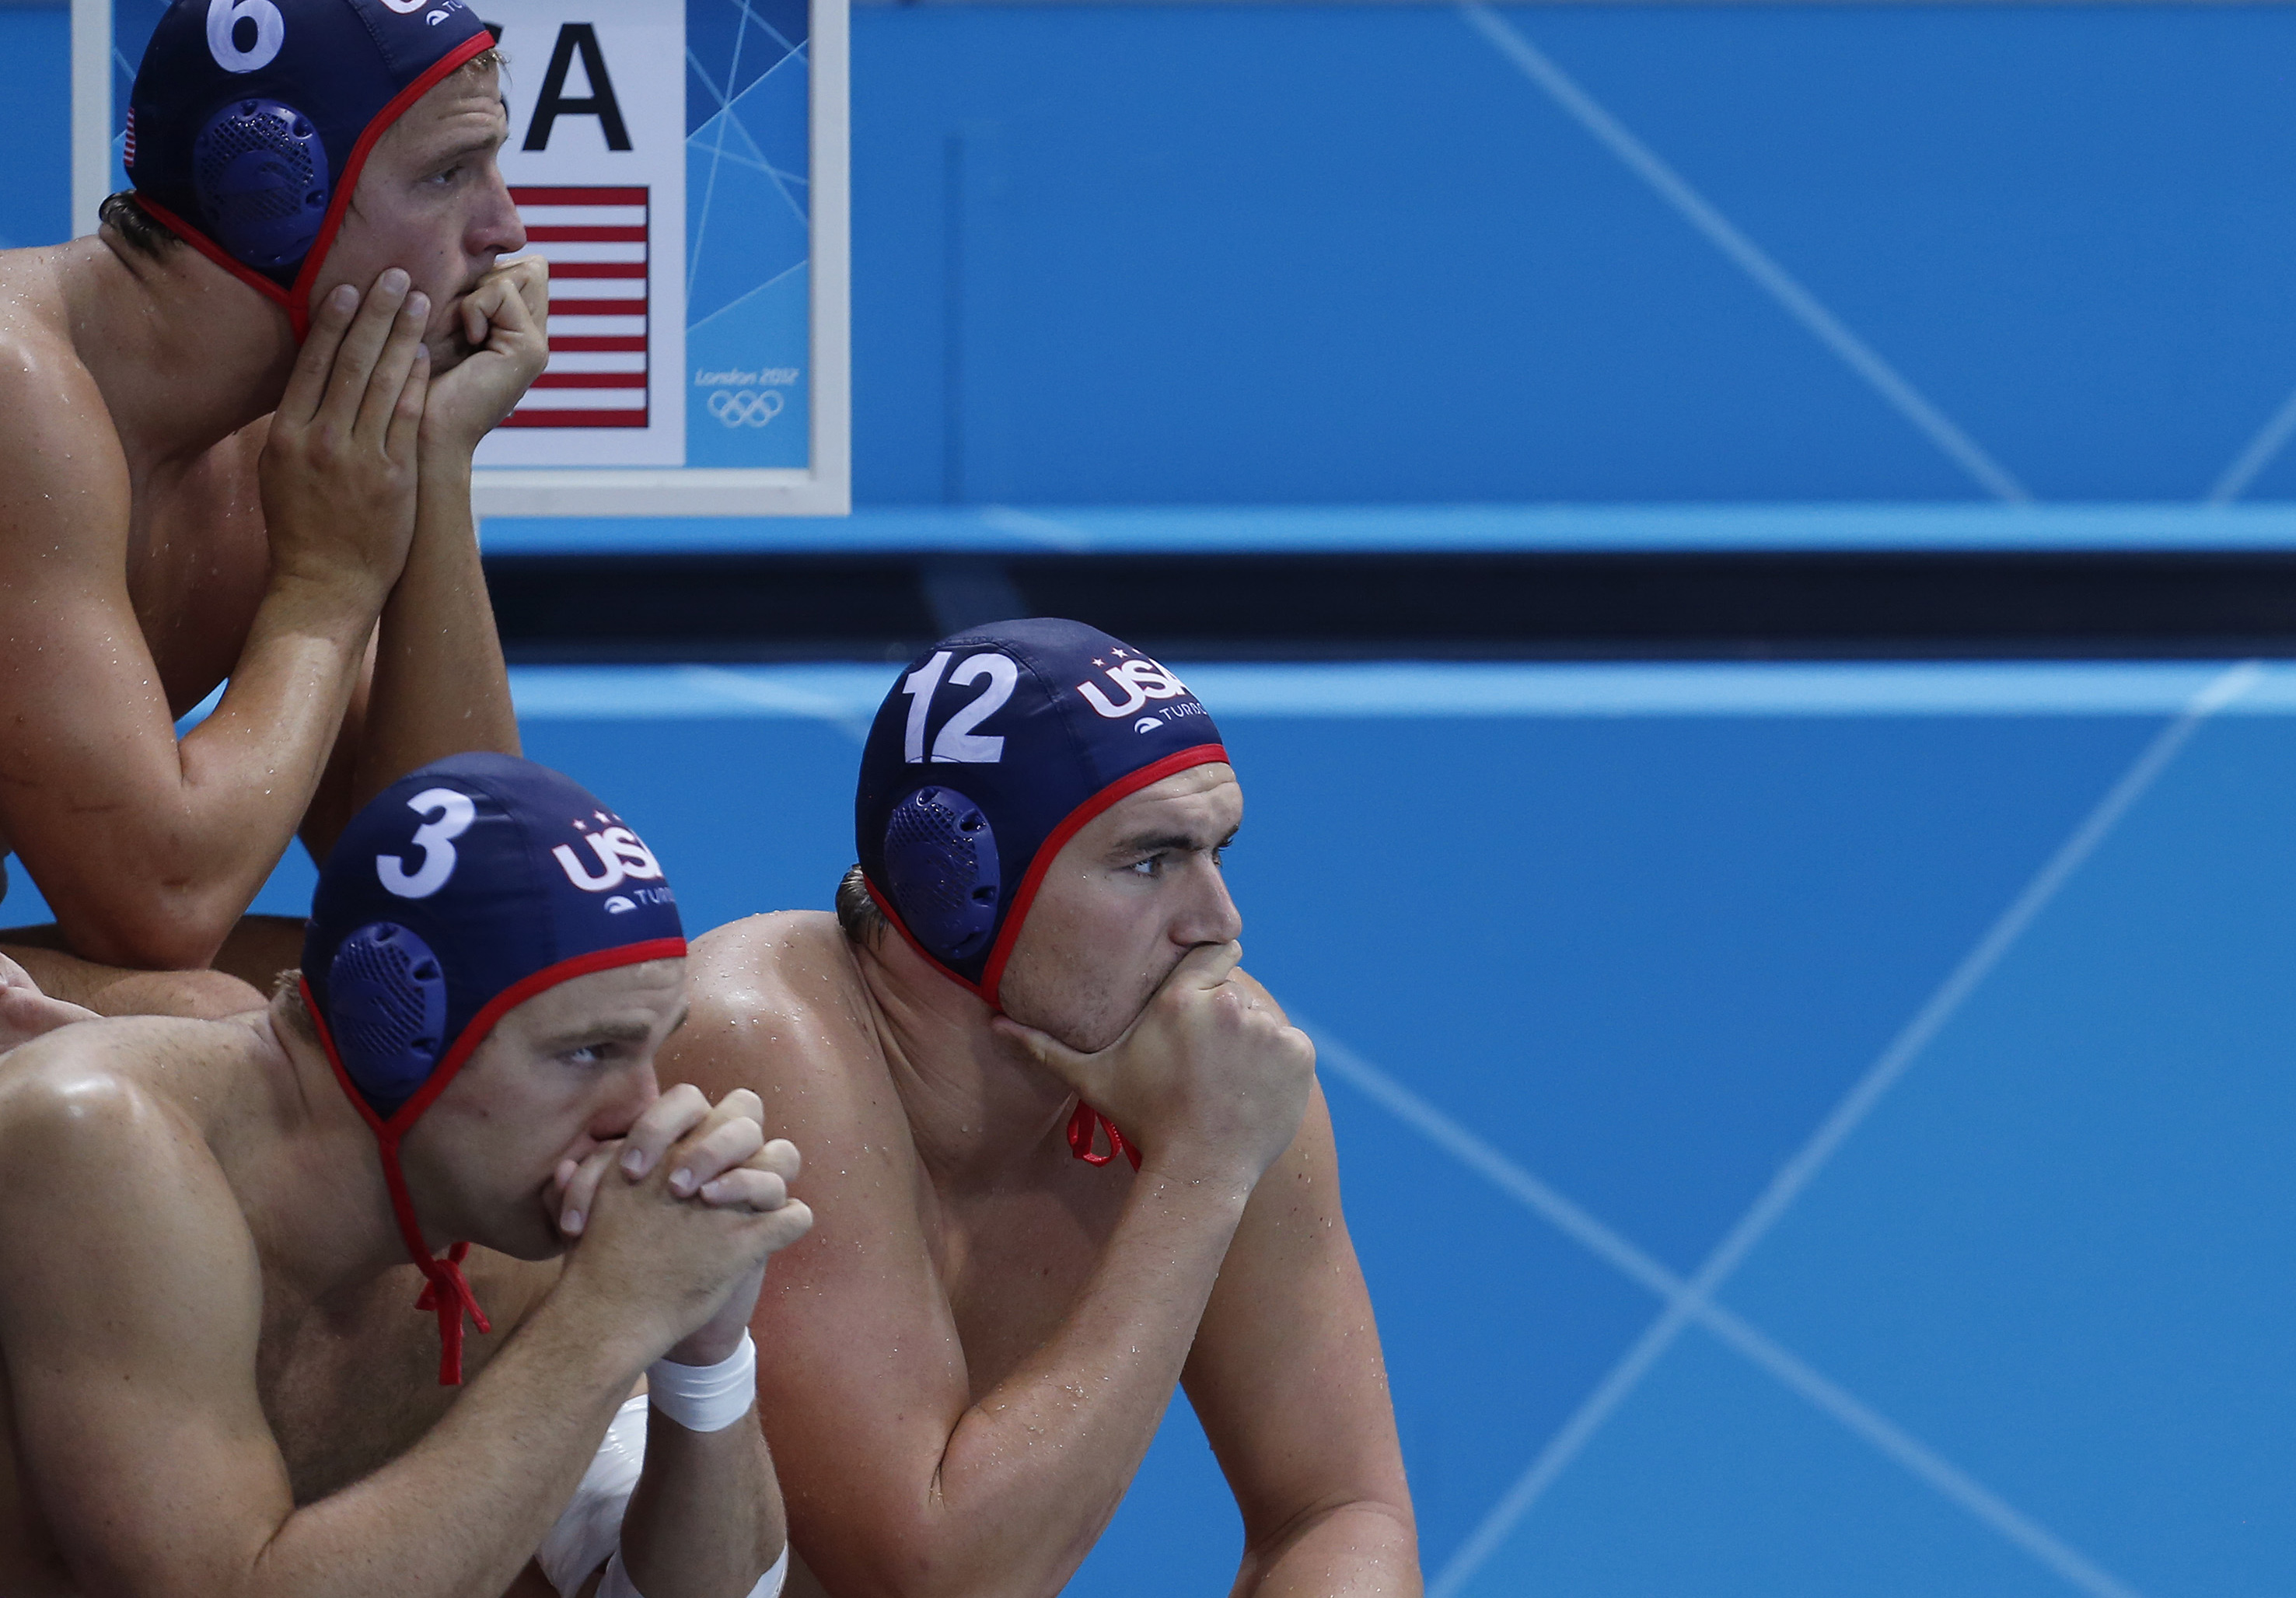 Shea Buckner, top left, with teammates Peter Hudnut, left and John Mann of the United States water polo team sit on the bench as they watch the game against Croatia during their men's quarterfinal water polo match at the 2012 Summer Olympics, Wednesday, Aug. 8, 2012, in London. (AP Photo/Alastair Grant)